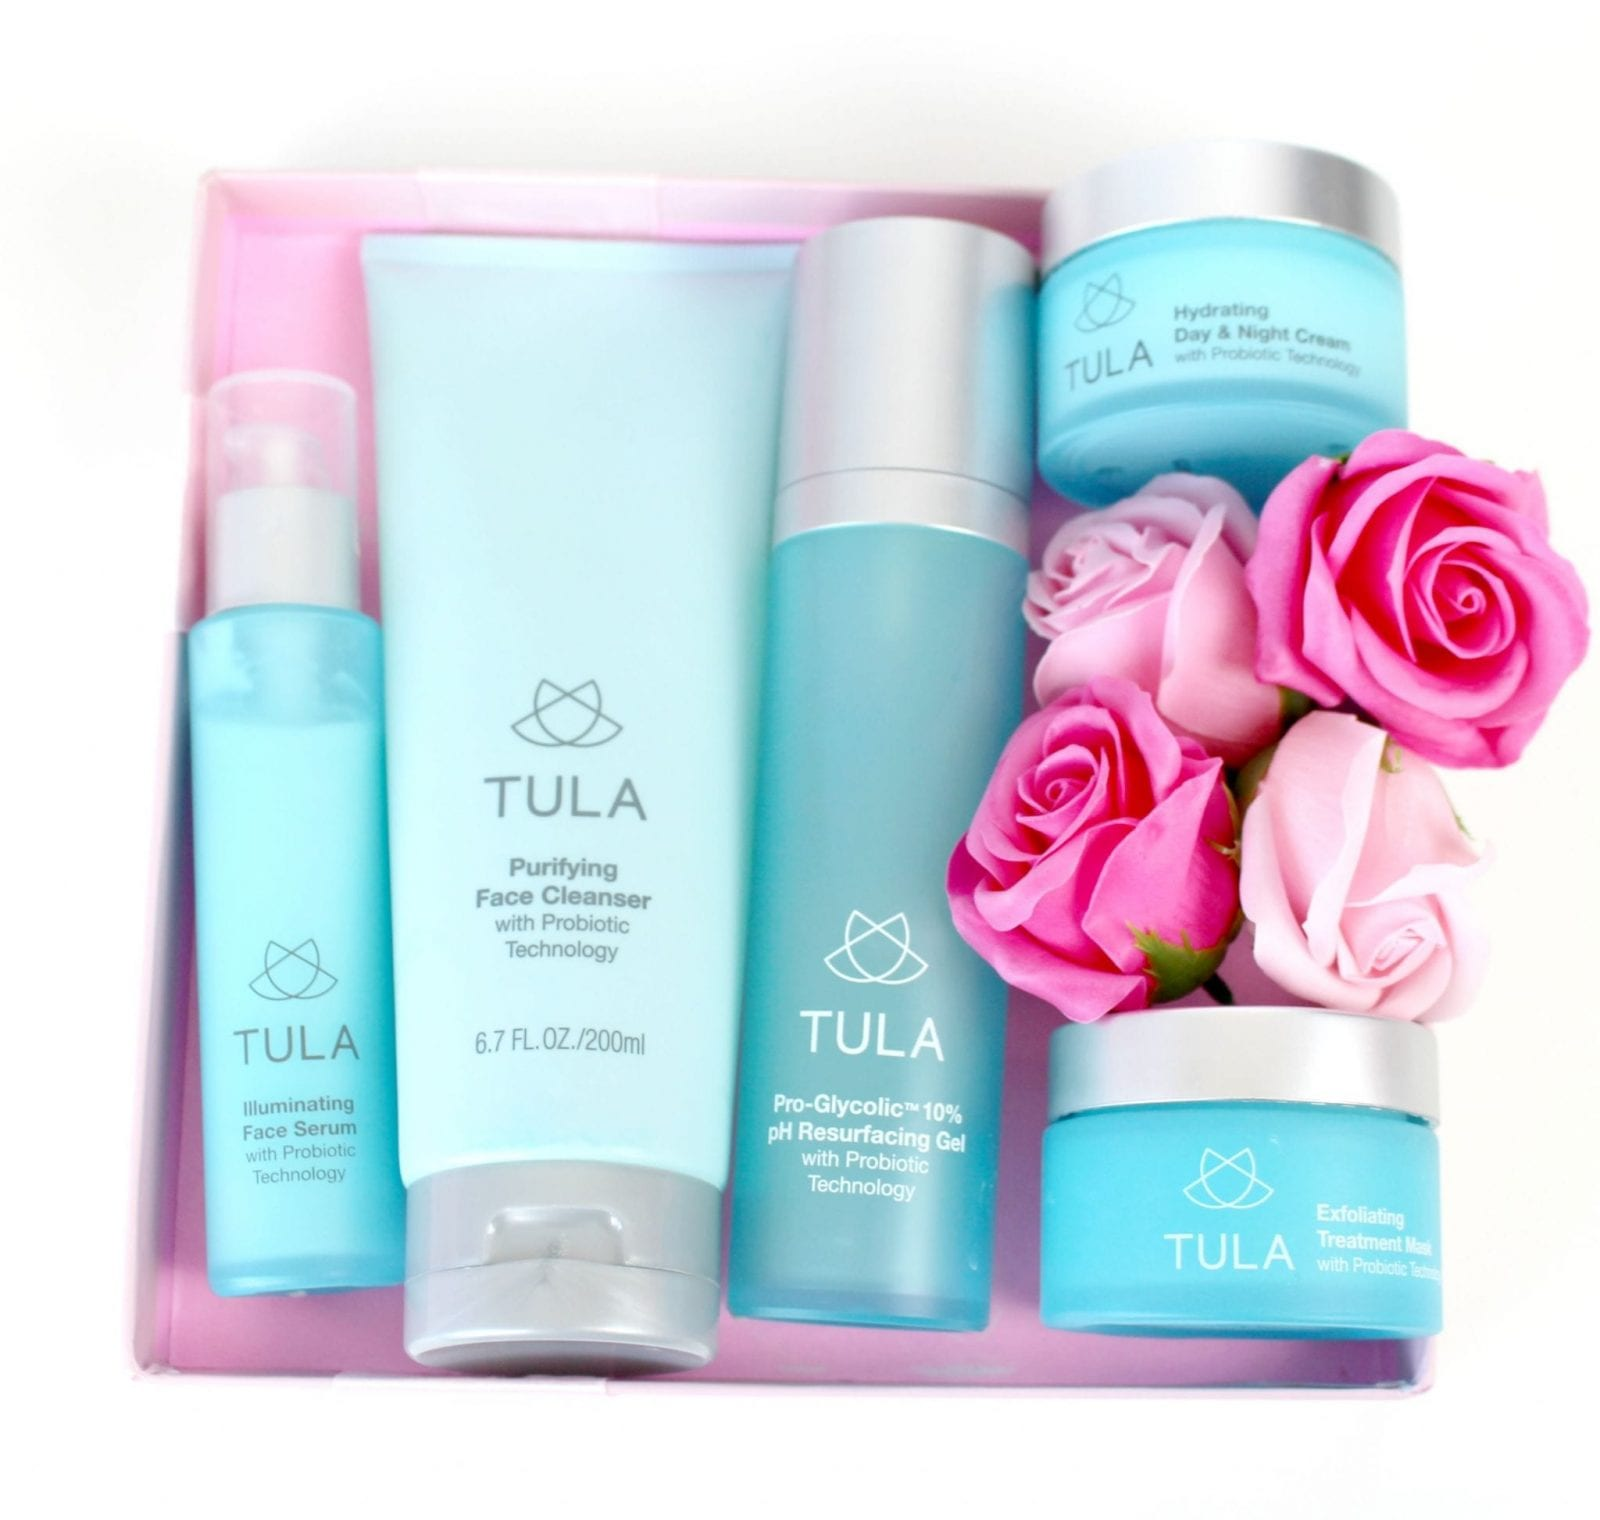 This is a close up of the Tula Skin Care collection for a well-rounded skin care routine.